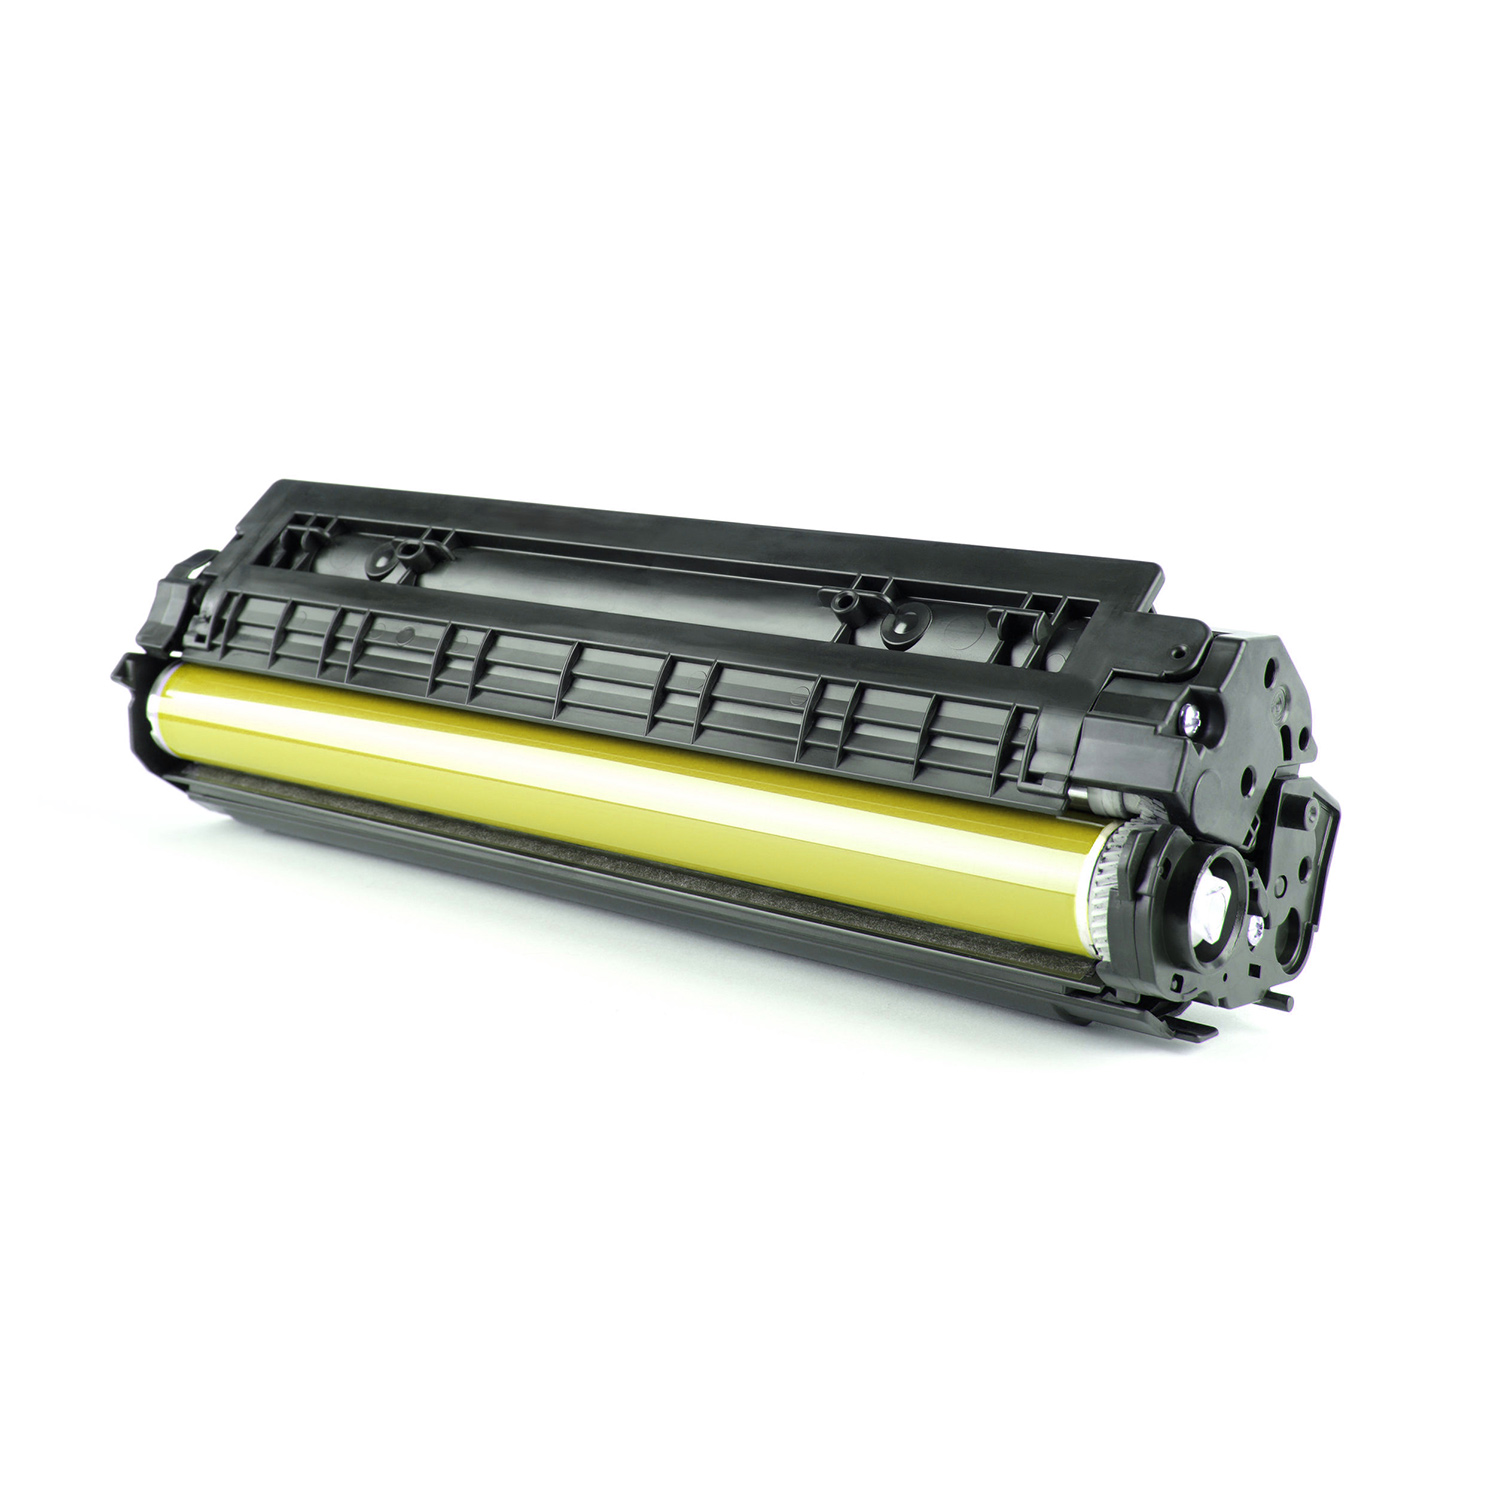 Compatible TK-5280Y Yellow for Kyoecera ECOSYS P6235/ Μ6235/ Μ6635